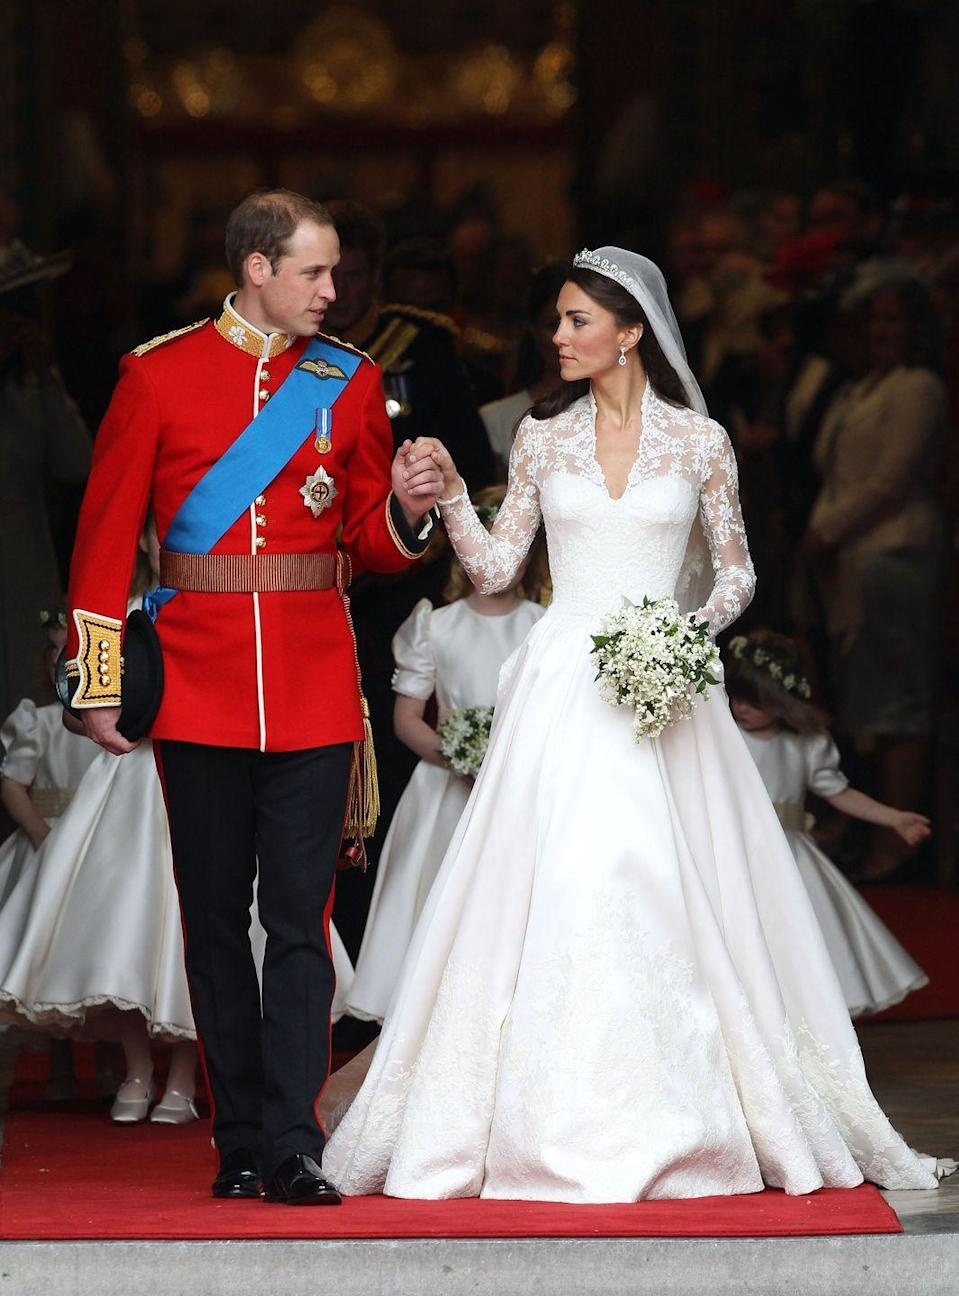 "<p>For Prince William and Kate Middleton's massive wedding at Westminster Abbey, Kate pulled out all of the stops for her dress. Her Alexander McQueen gown featured 58 gazar and organza covered buttons down the back and she borrowed the <a href=""https://www.townandcountrymag.com/the-scene/weddings/g17805394/royal-wedding-tiaras-throughout-history/"" rel=""nofollow noopener"" target=""_blank"" data-ylk=""slk:Queen's Cartier Halo"" class=""link rapid-noclick-resp"">Queen's Cartier Halo</a>, which was given to Queen Elizabeth by the Queen Mother on her 18th birthday.</p>"